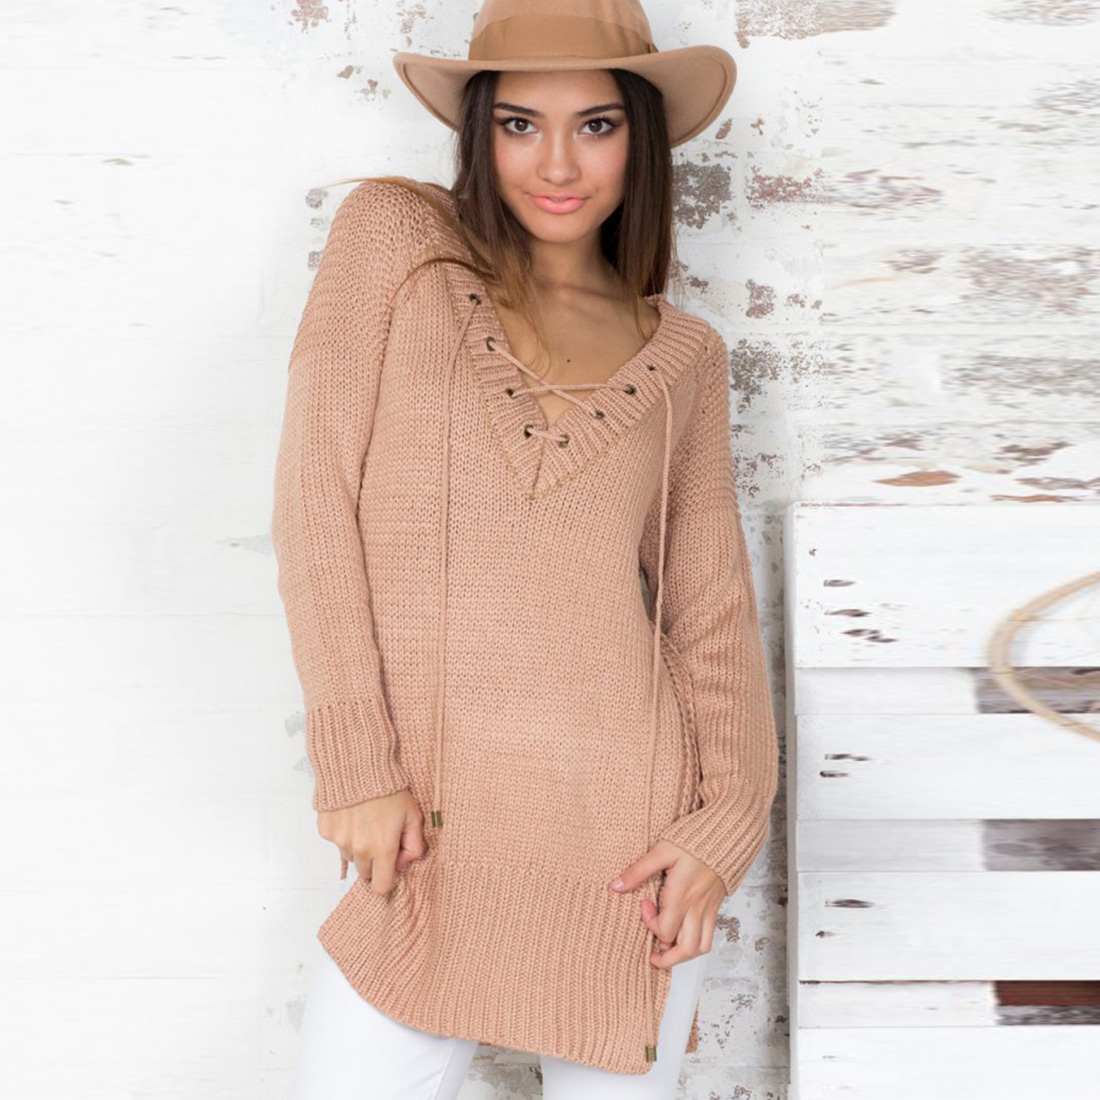 Casual-Women-Sweater-Outwear-Coat-Sweater-Long-Sleeve-Knitted-Cardigan-Loose